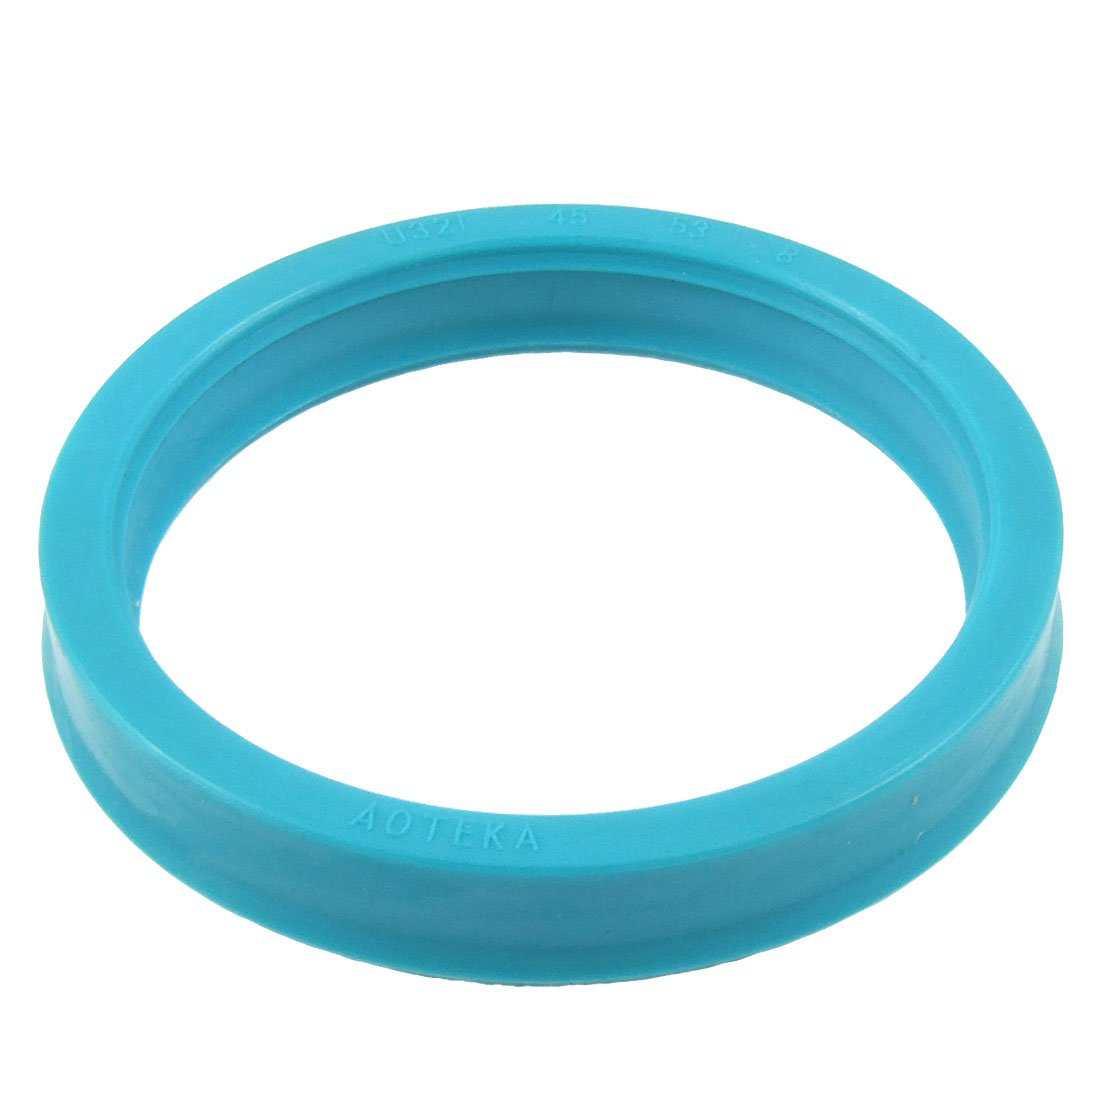 uxcell Single Lip PU Hydraulic Cylinder Oil Seal 45mm x 53mm x 8mm a12011100ux0123